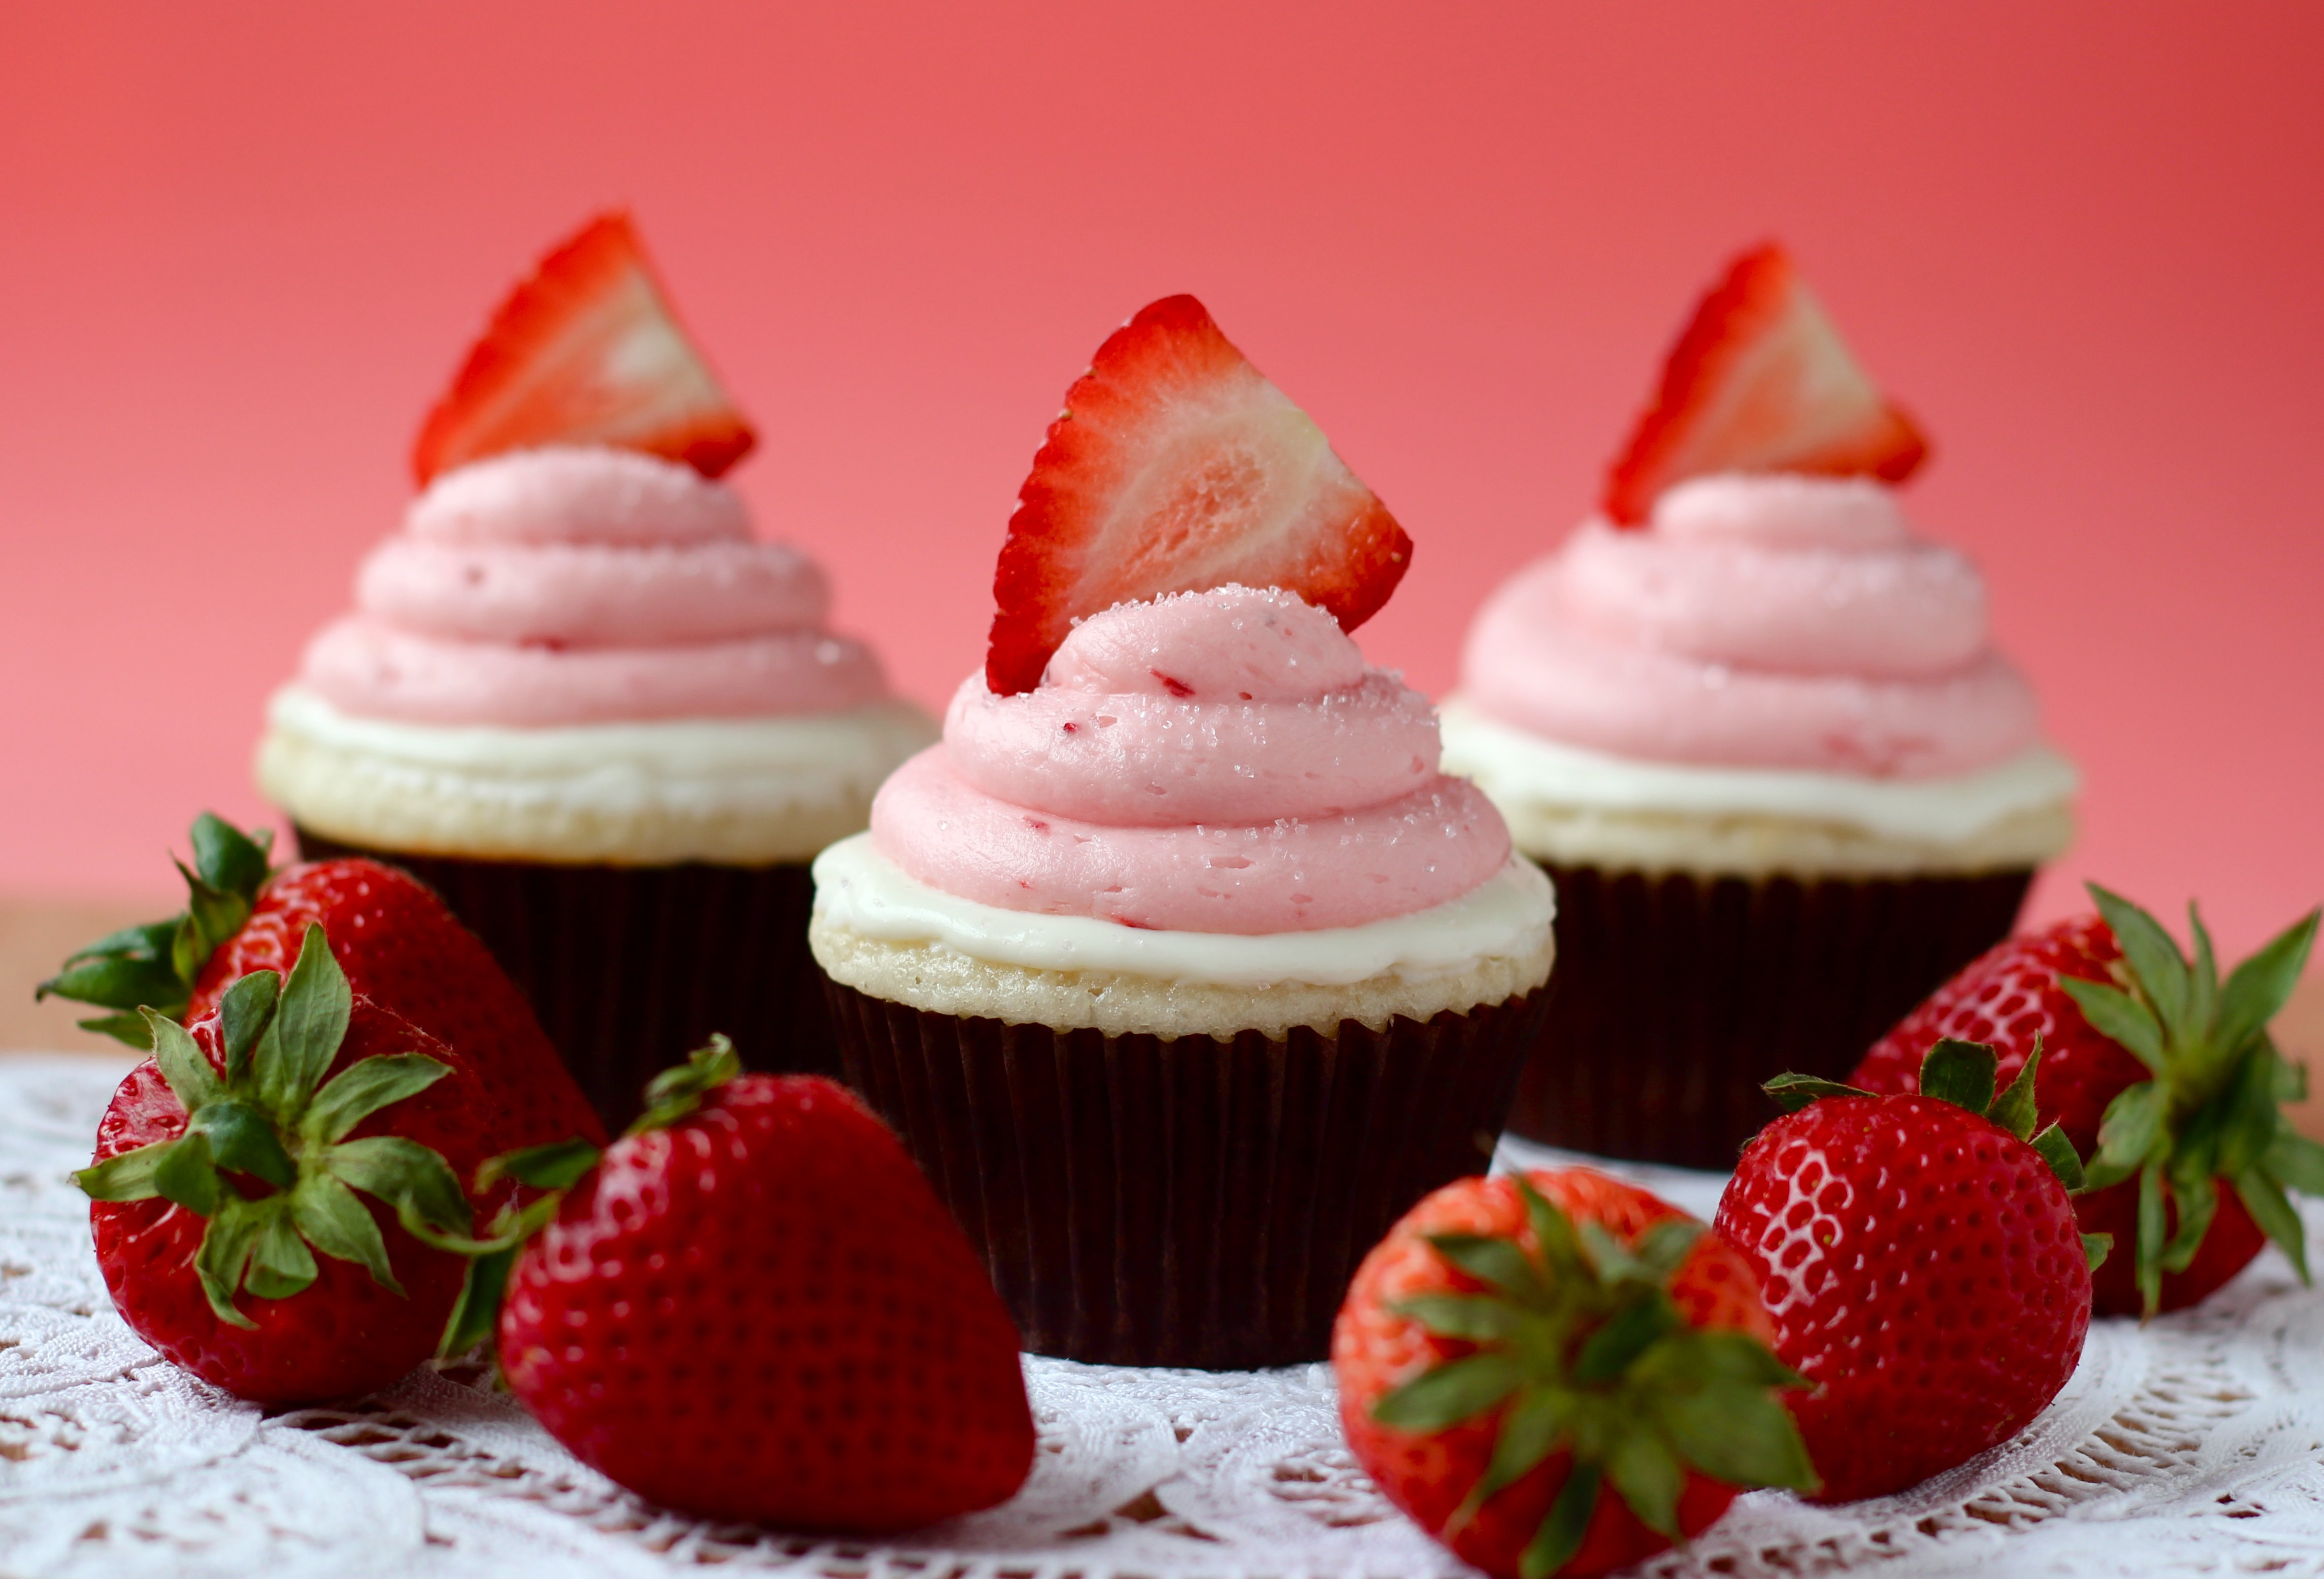 40 Succulent Strawberry Cupcakes